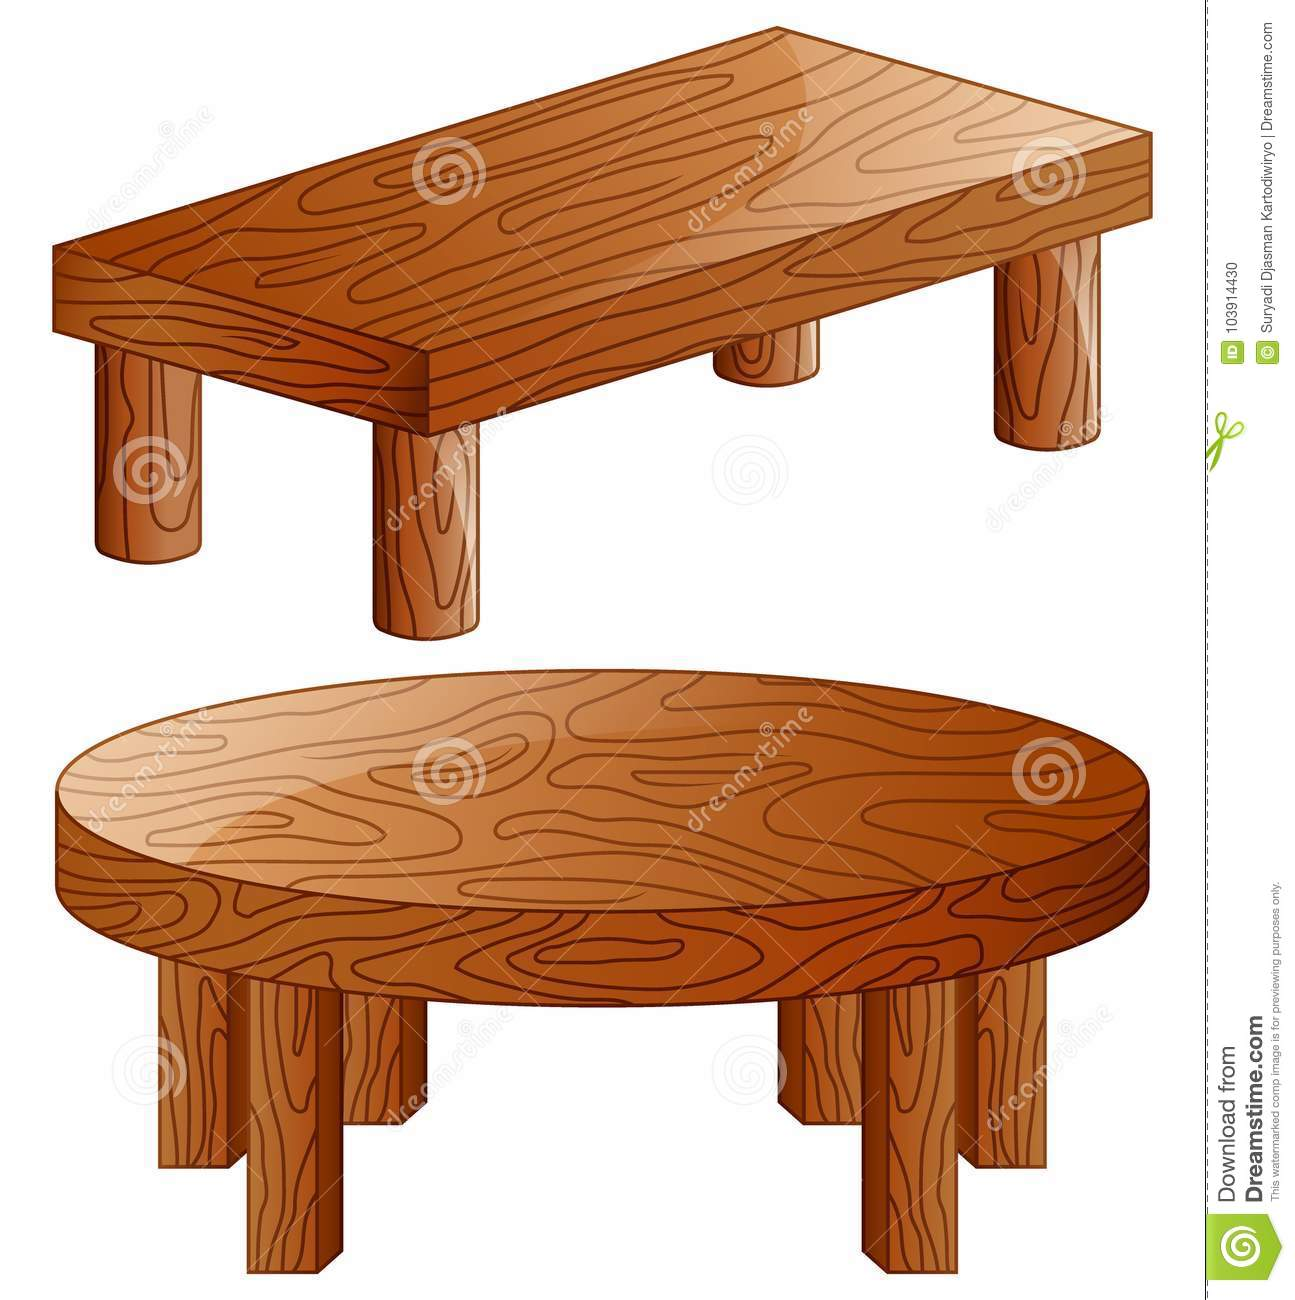 Download Cartoon Wooden Tables On White Background Stock Vector    Illustration Of Dining, Brown: